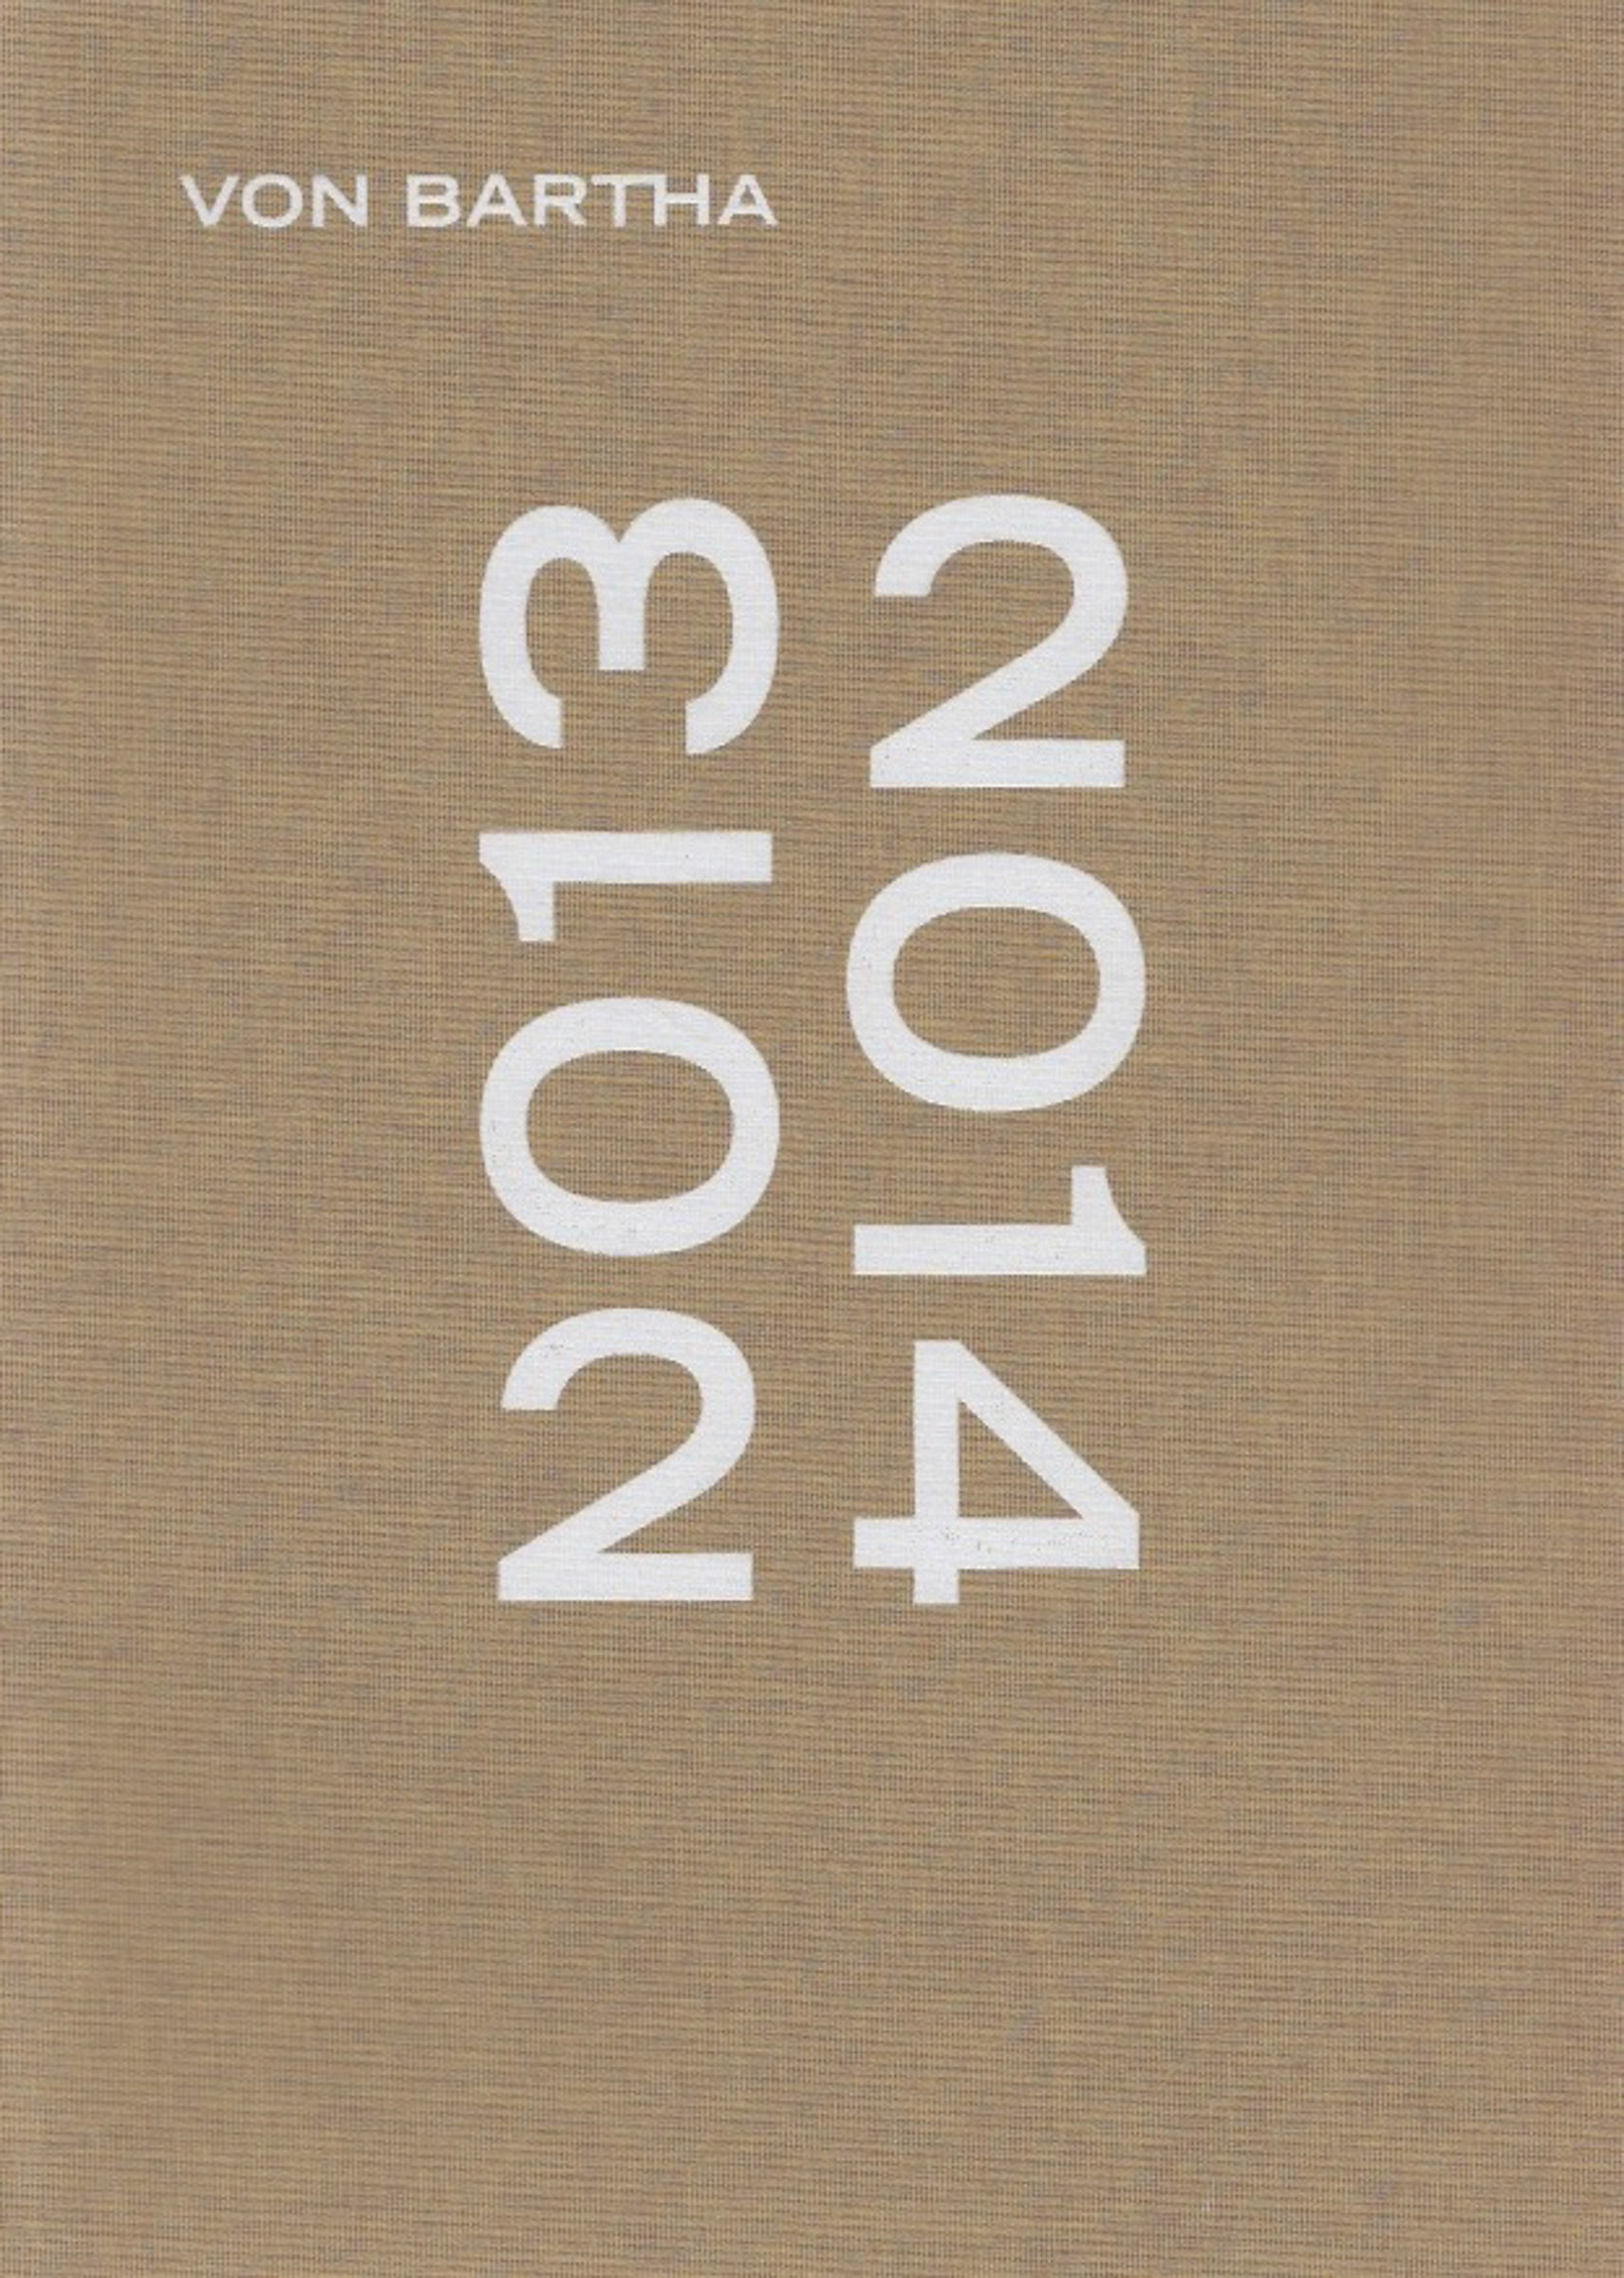 Book no. 17: Yearbook 2013/2014